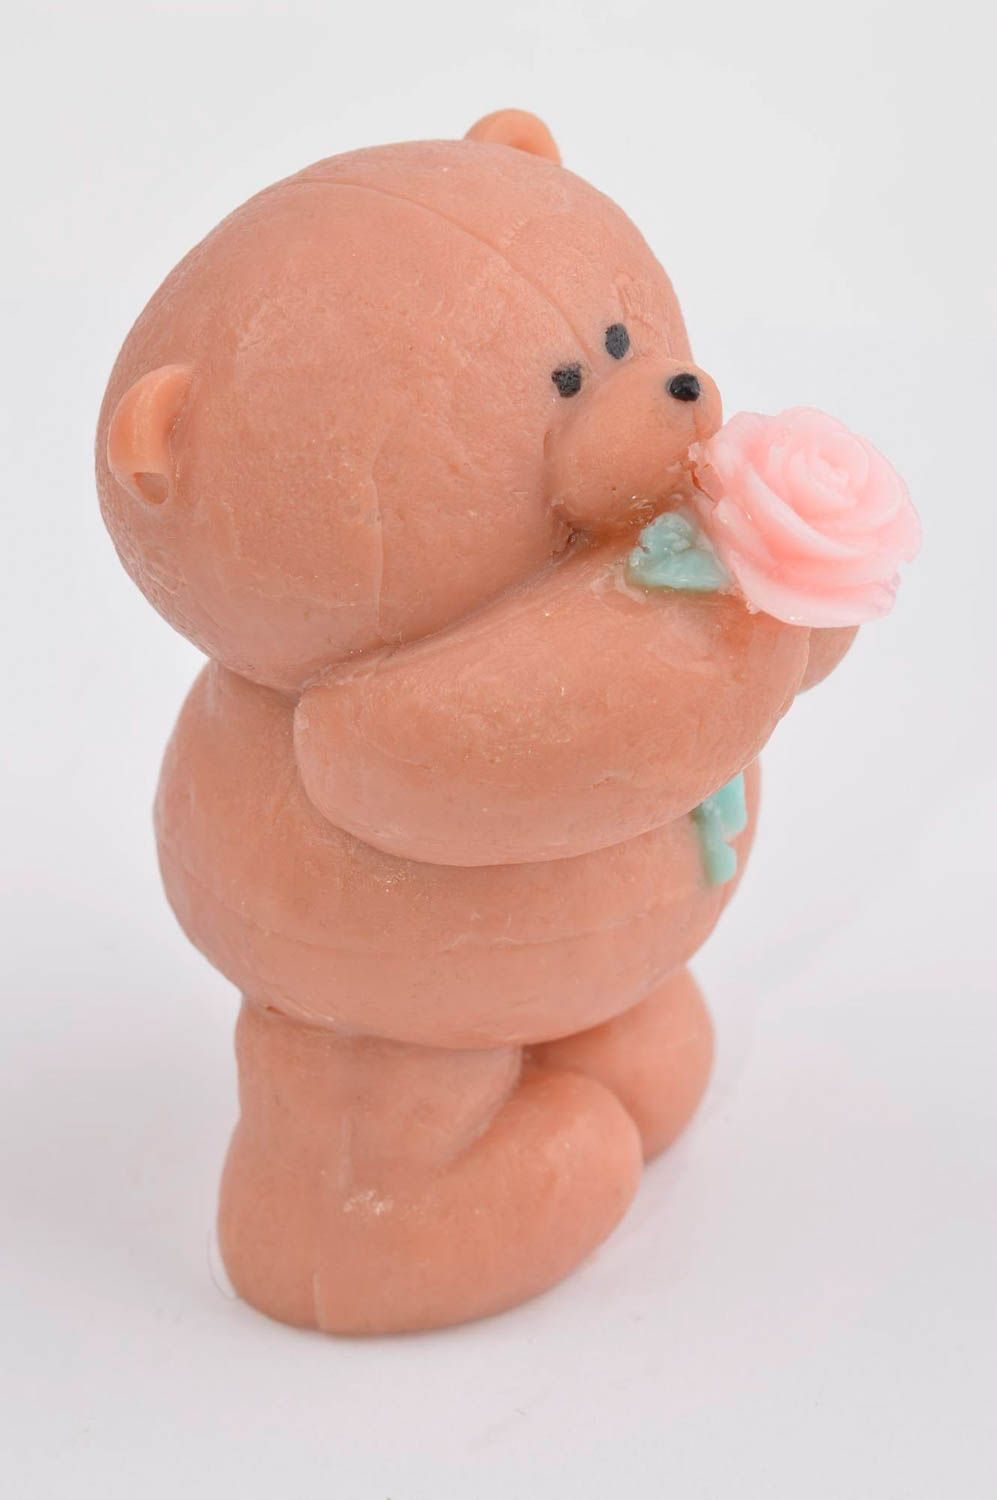 Handmade soap natural soap teddy-bear with rose natural cosmetic aroma soap photo 4